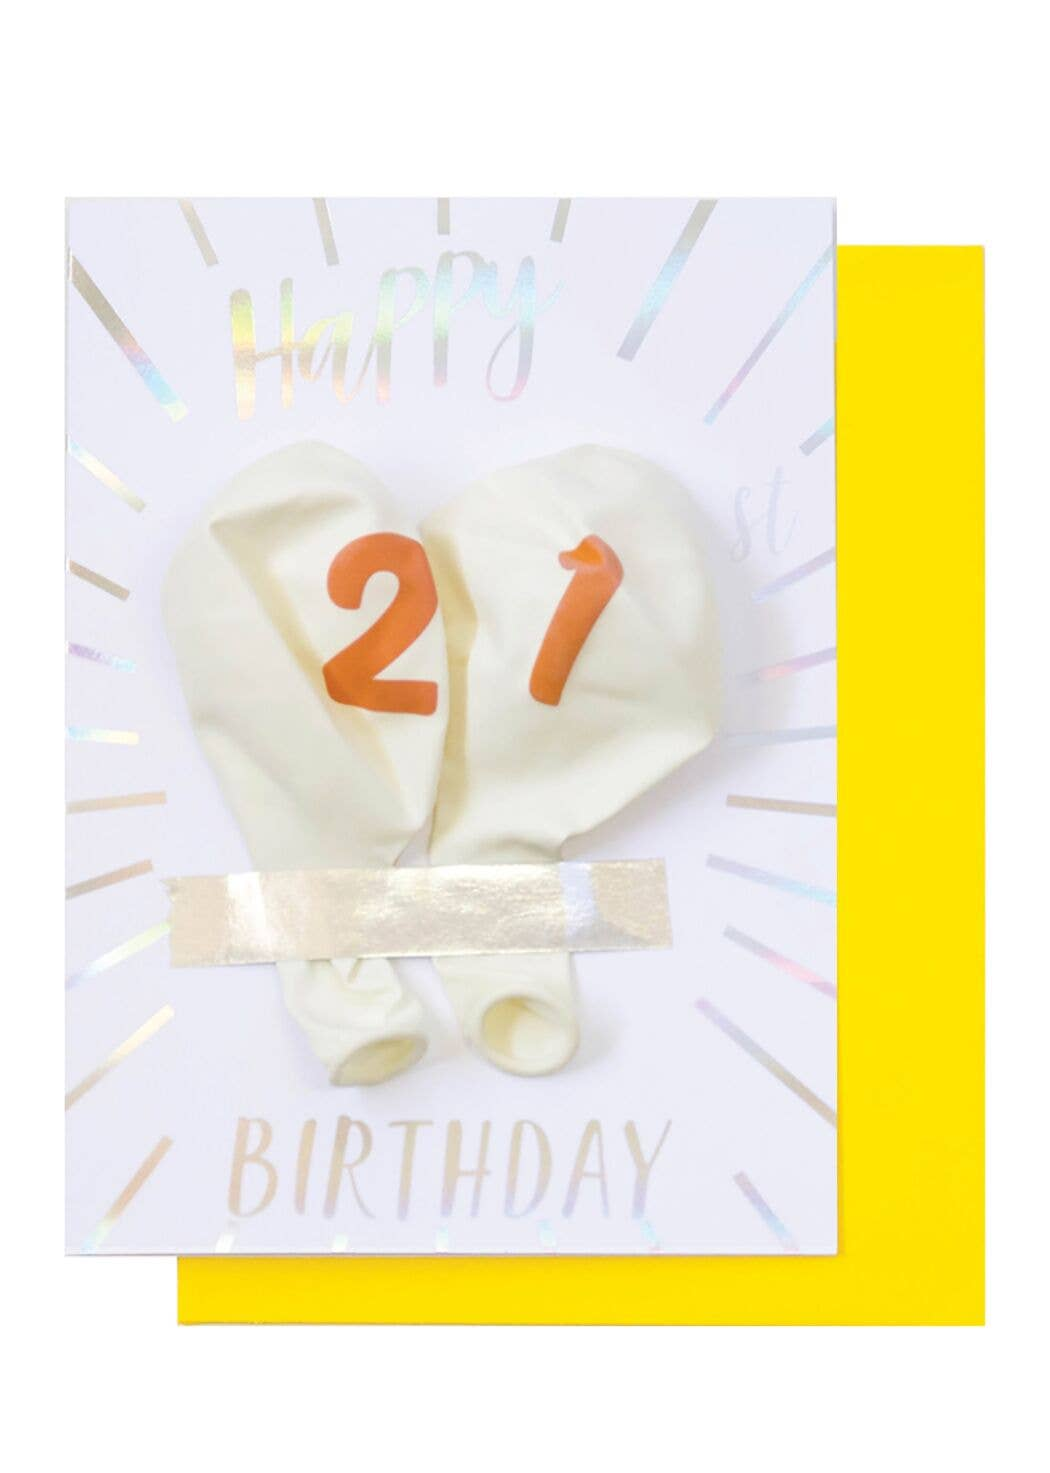 Milestone Birthday Balloon Card - 21th Birthday